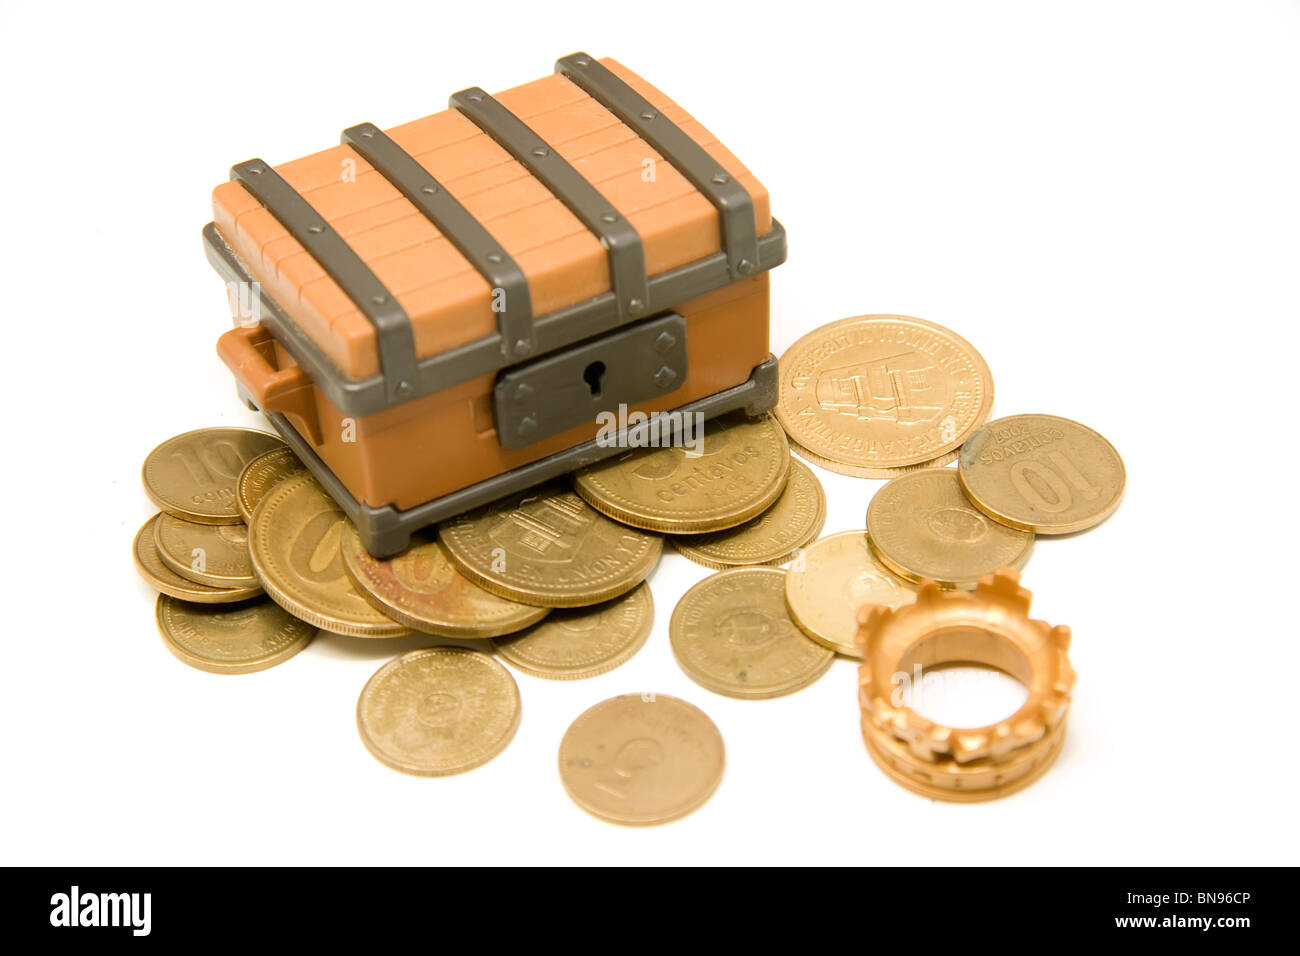 Open toy pirate chest whit argentinian money and King crown over white background - Stock Image